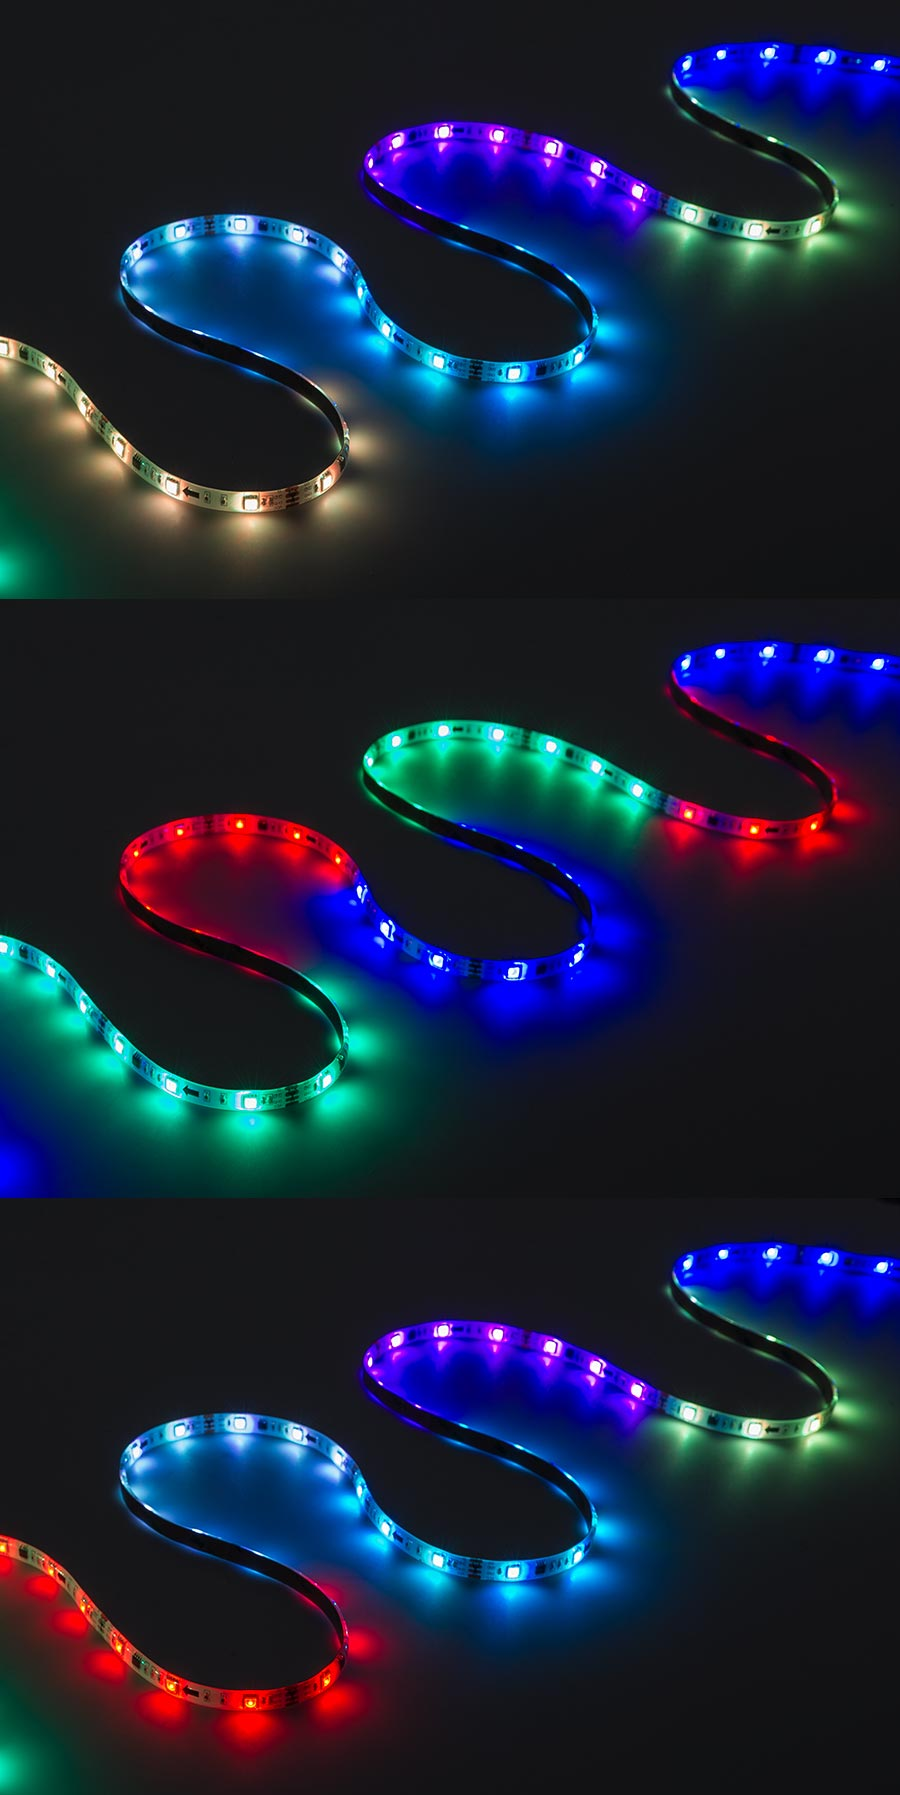 Outdoor rgb led strip lights color chasing 12v led tape light waterproof color chasing led light strips with multi color leds 1640ft 5m outdoor led tape light with 18 smdsft 3 chip rgb smd led 5050 on showing mozeypictures Choice Image